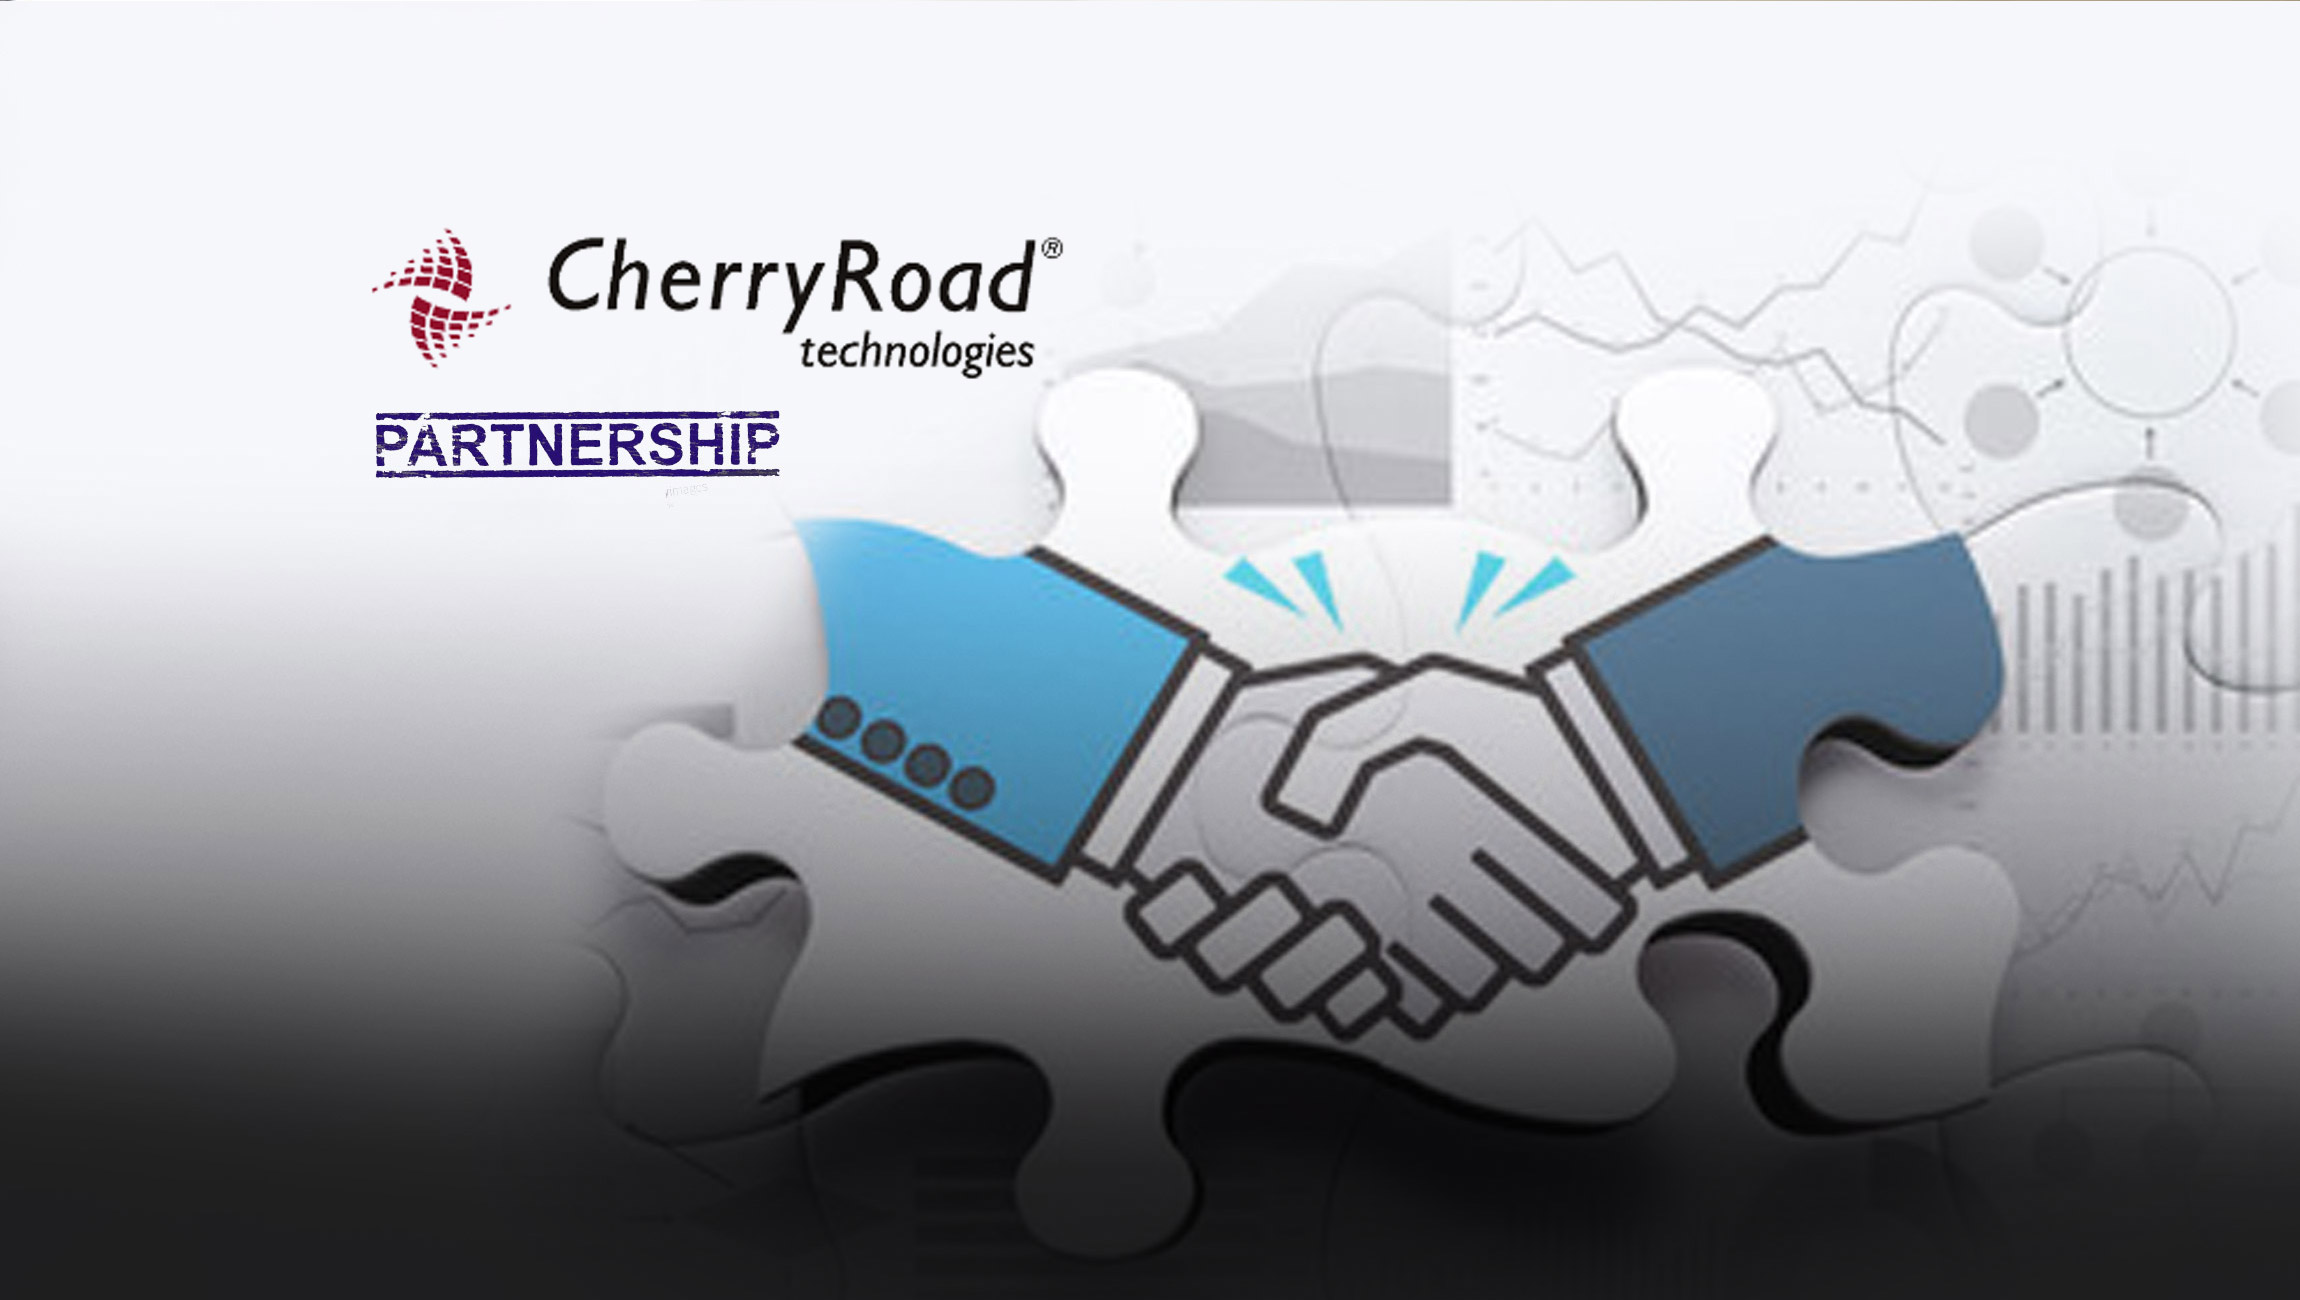 CherryRoad Announces Partnership With DocuSign